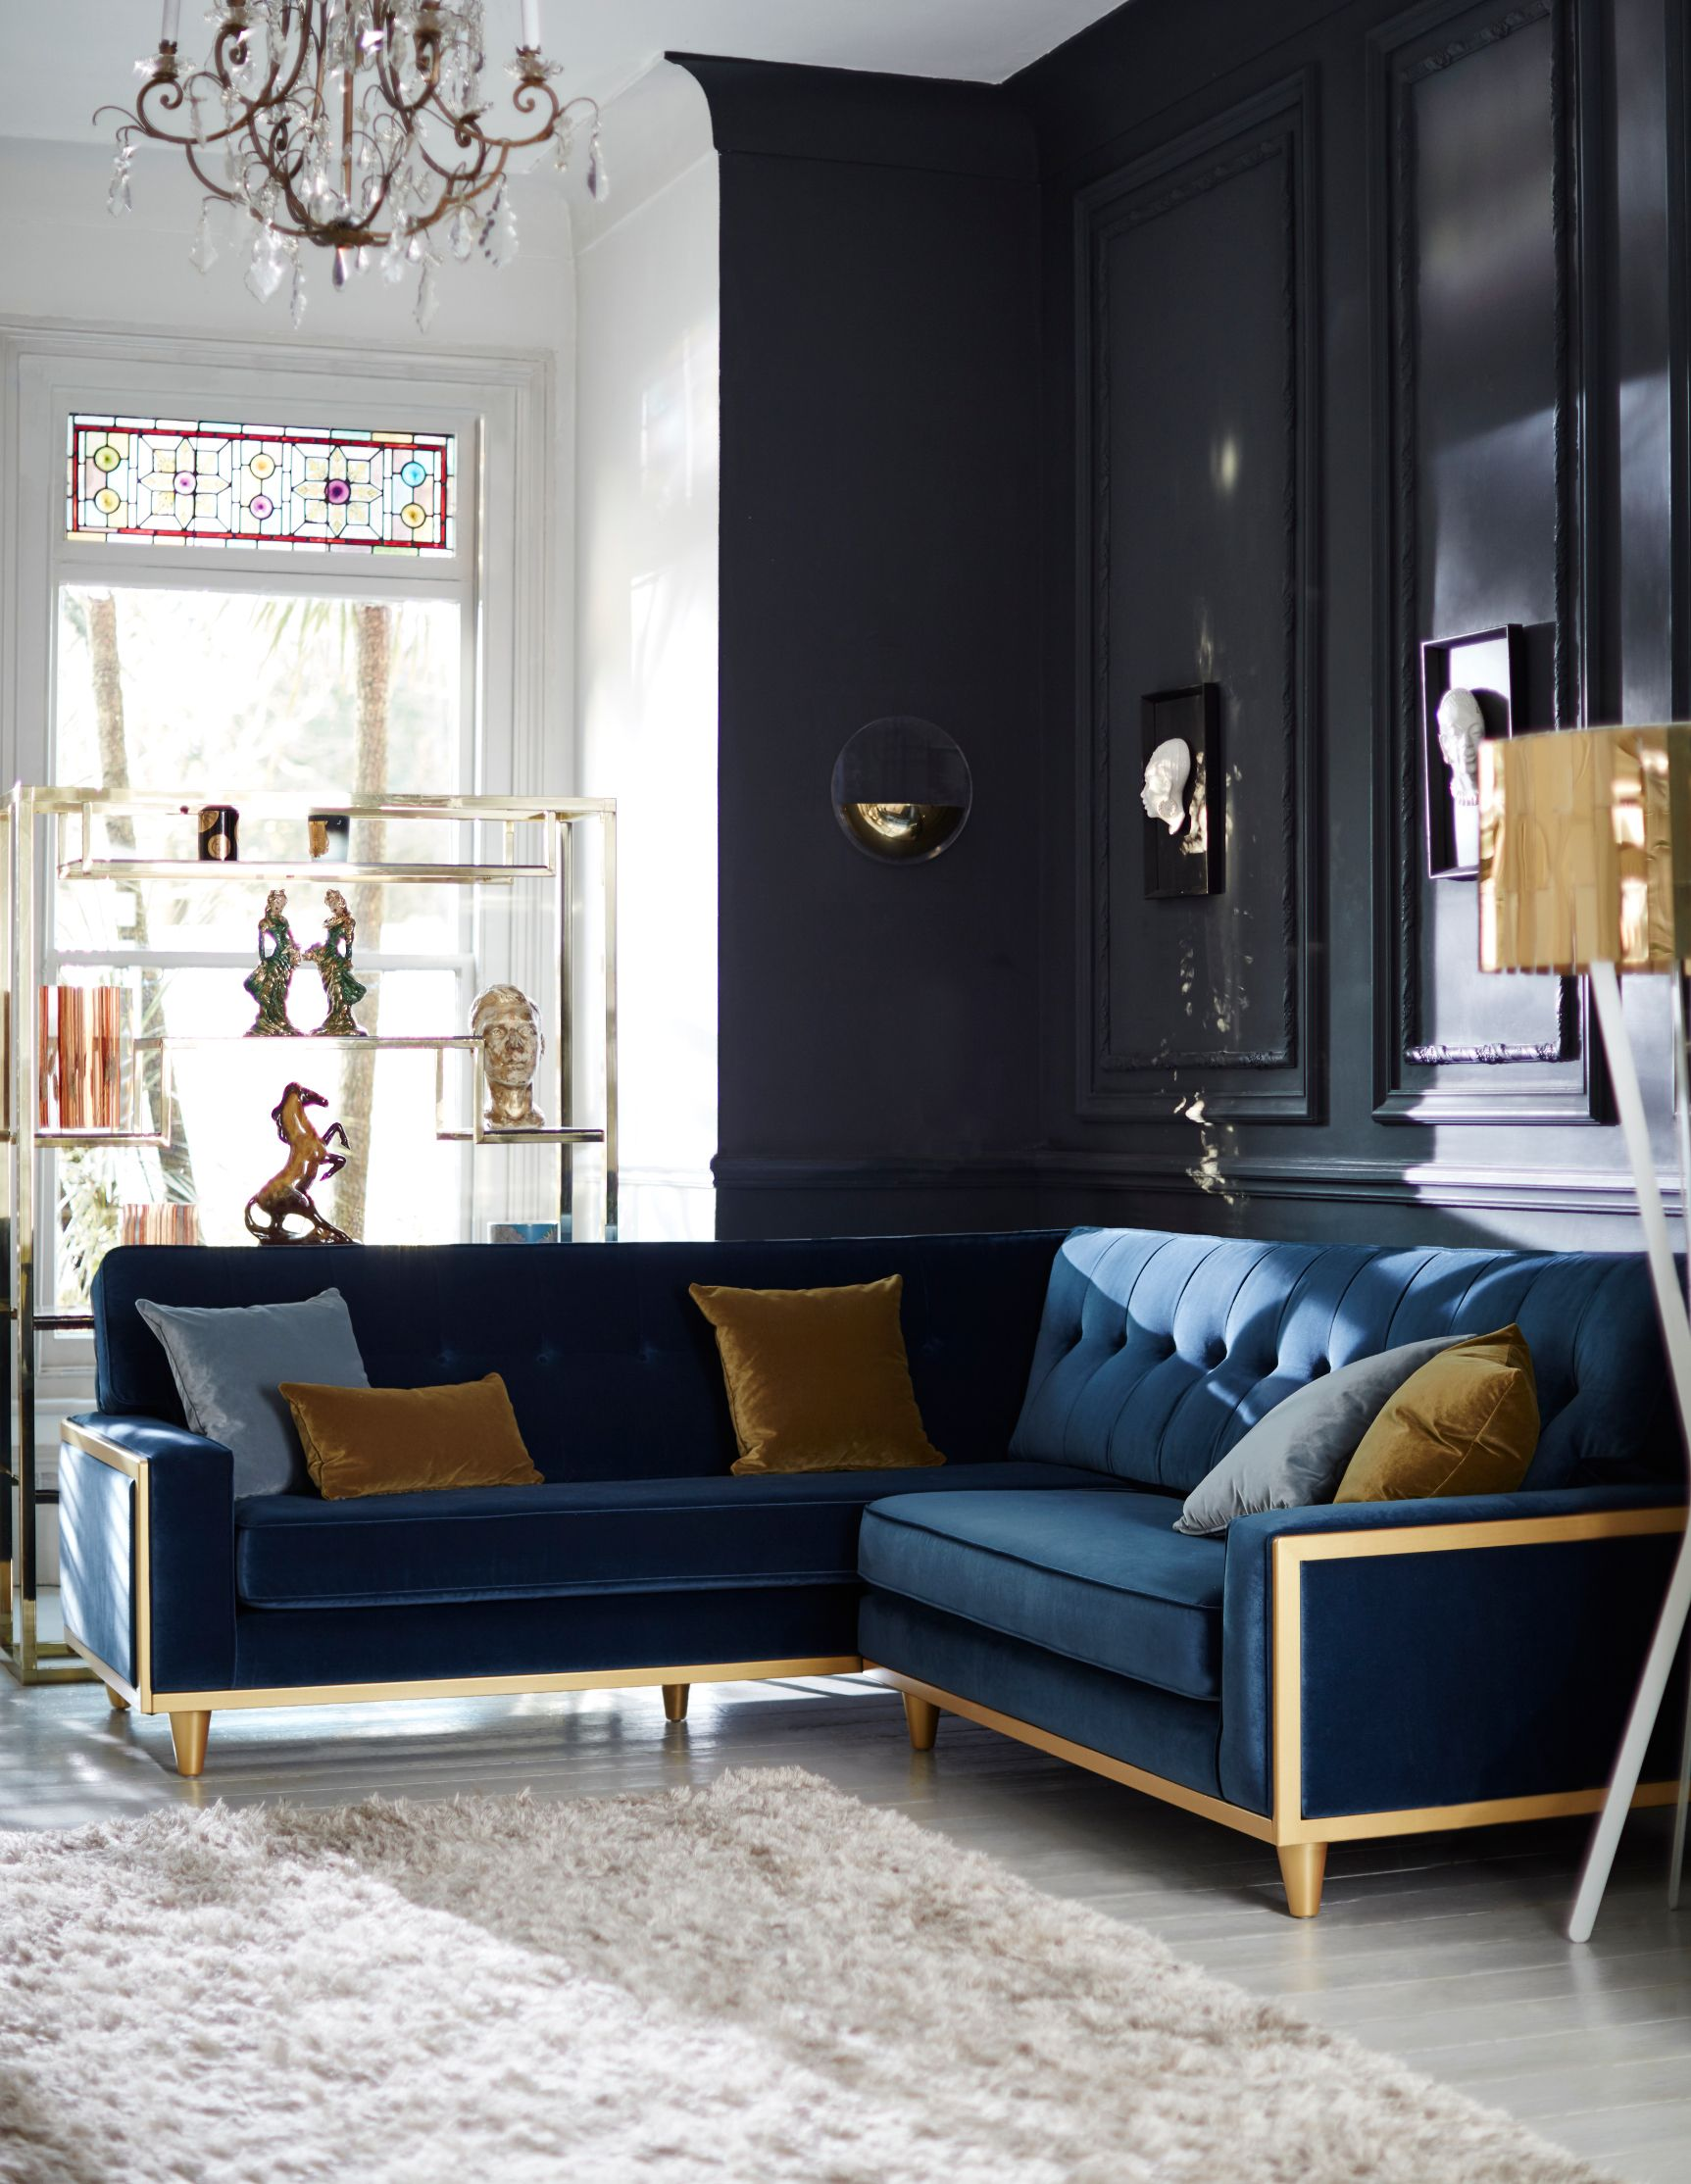 Dream Living Room With Teal Velvet Sofa Velvet Sofa Living Room Corner Sofa Living Room Blue Velvet Sofa Living Room